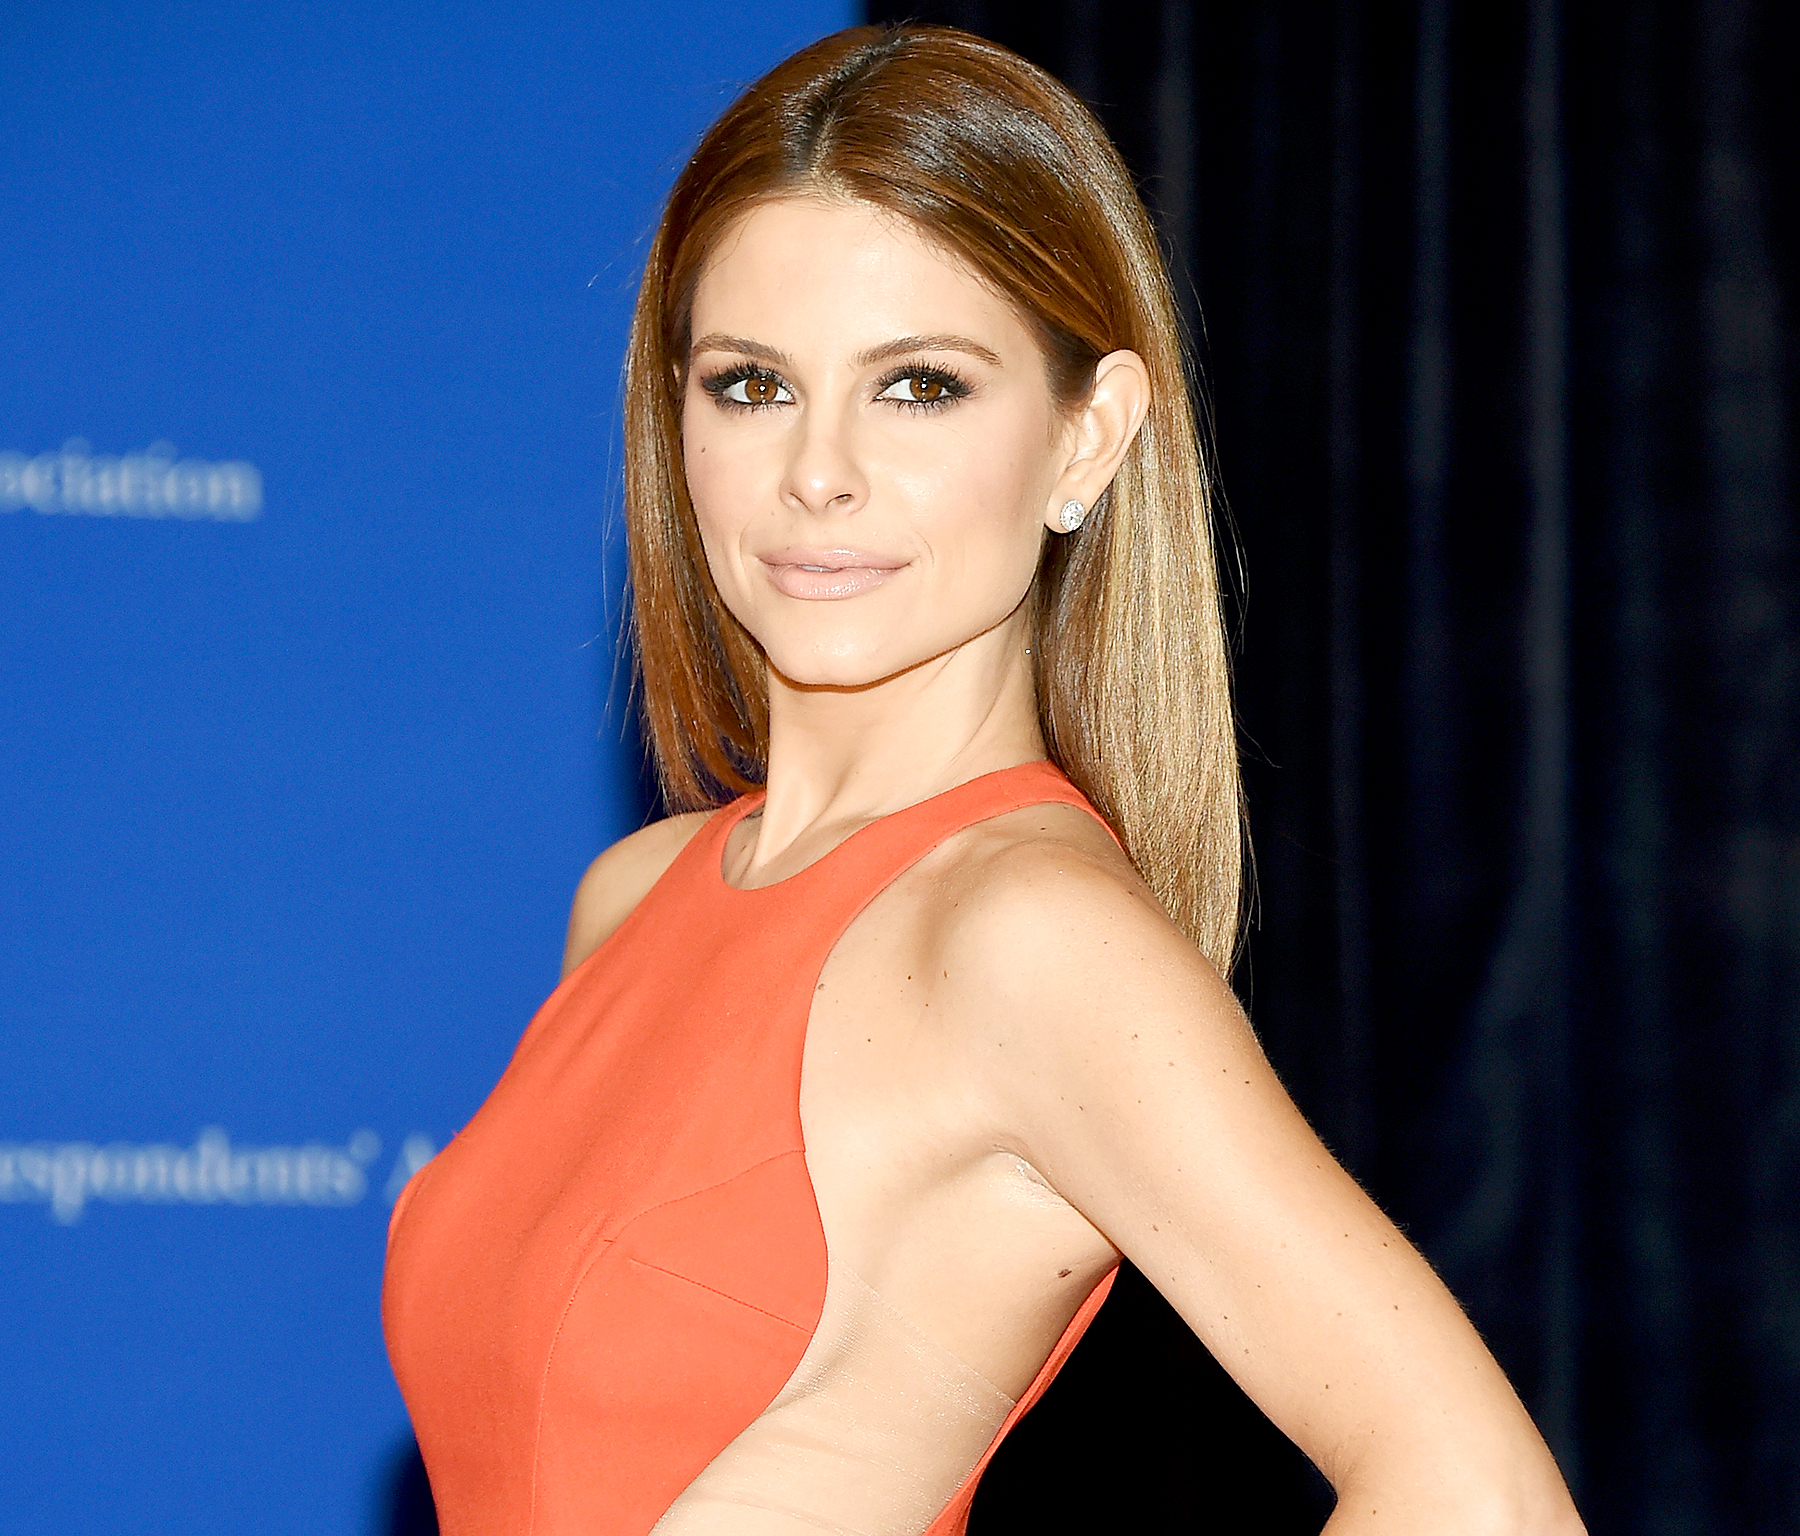 Maria Menounos attends the 101st Annual White House Correspondents' Association Dinner at the Washington Hilton on April 25, 2015 in Washington, DC.